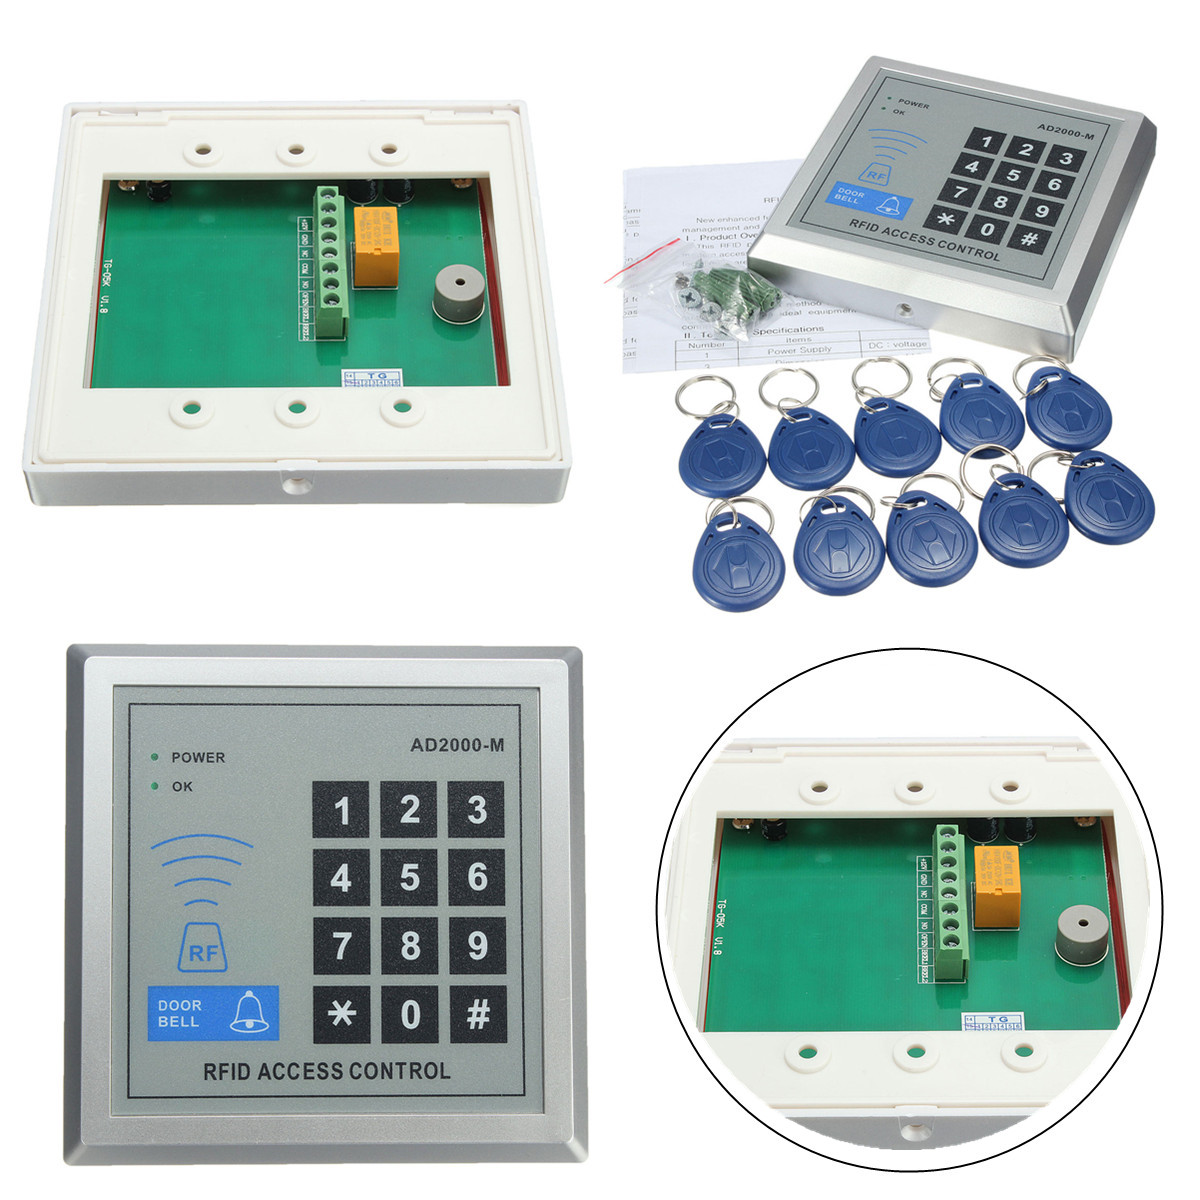 hight resolution of keys can access control wiring diagram wiring diagram magnetic lock schematic 10 keys 500 user ad2000